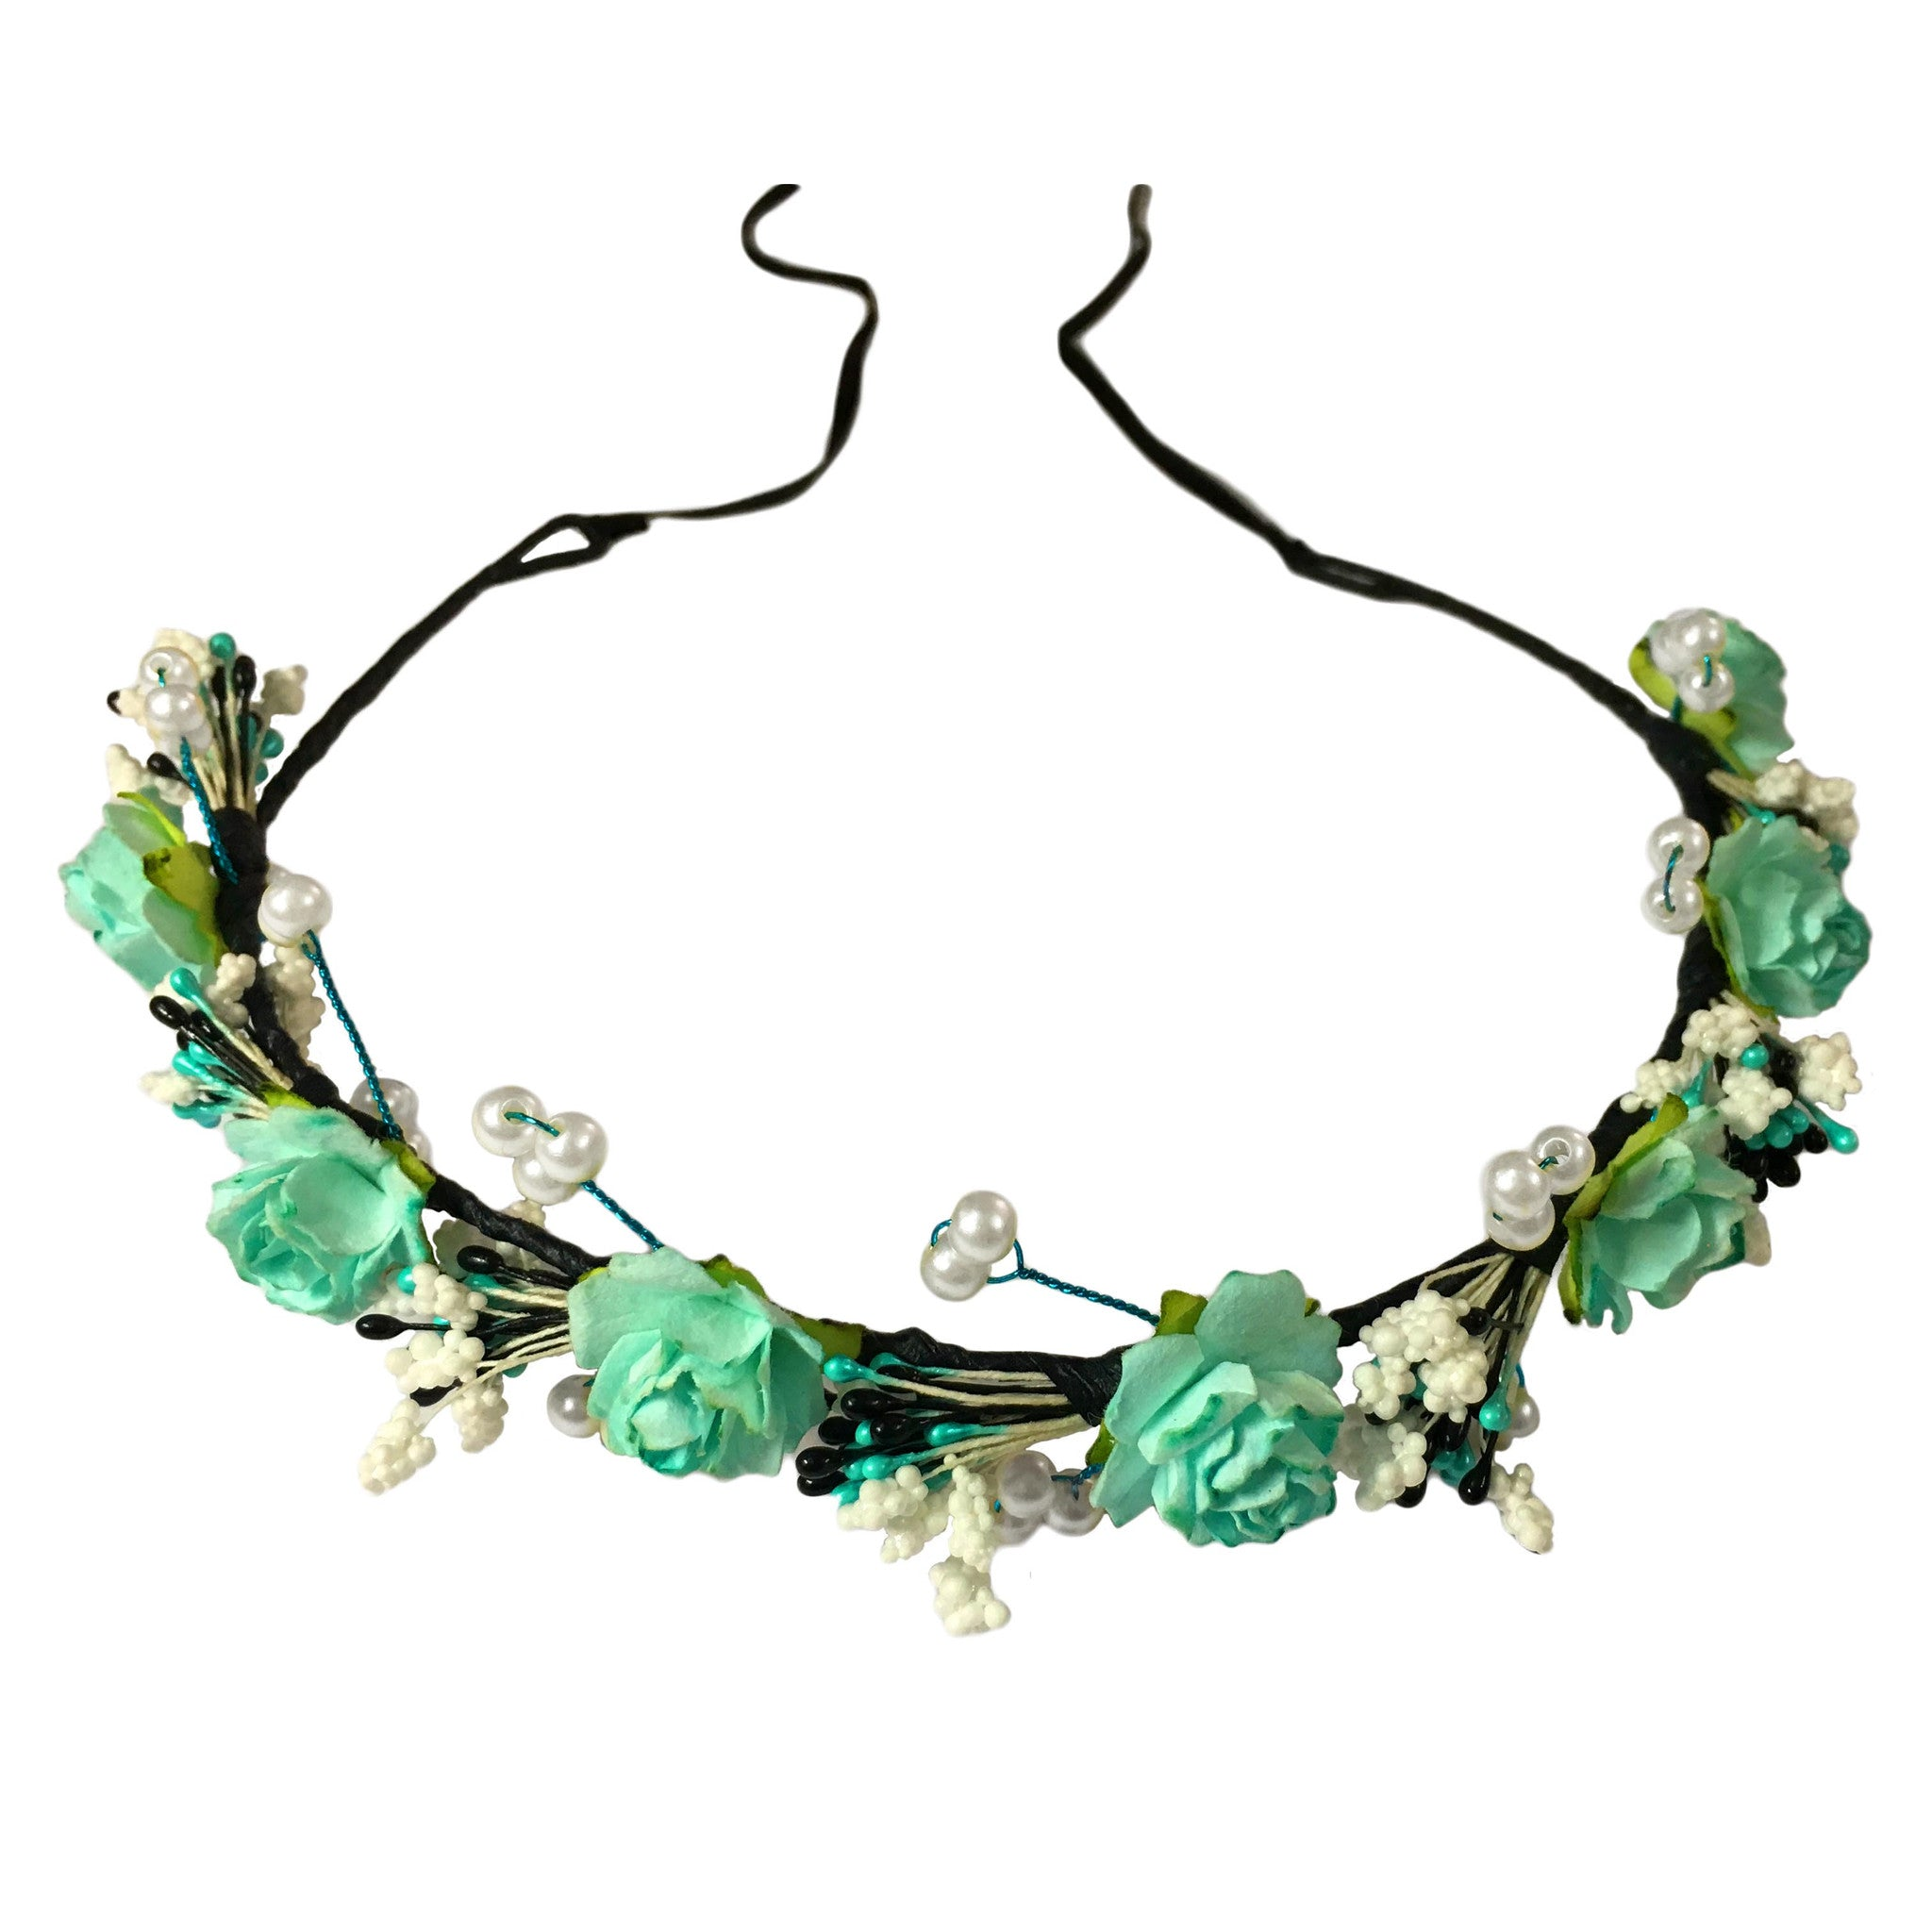 Mariosa Floral Hair Wreath - Crochita - 1